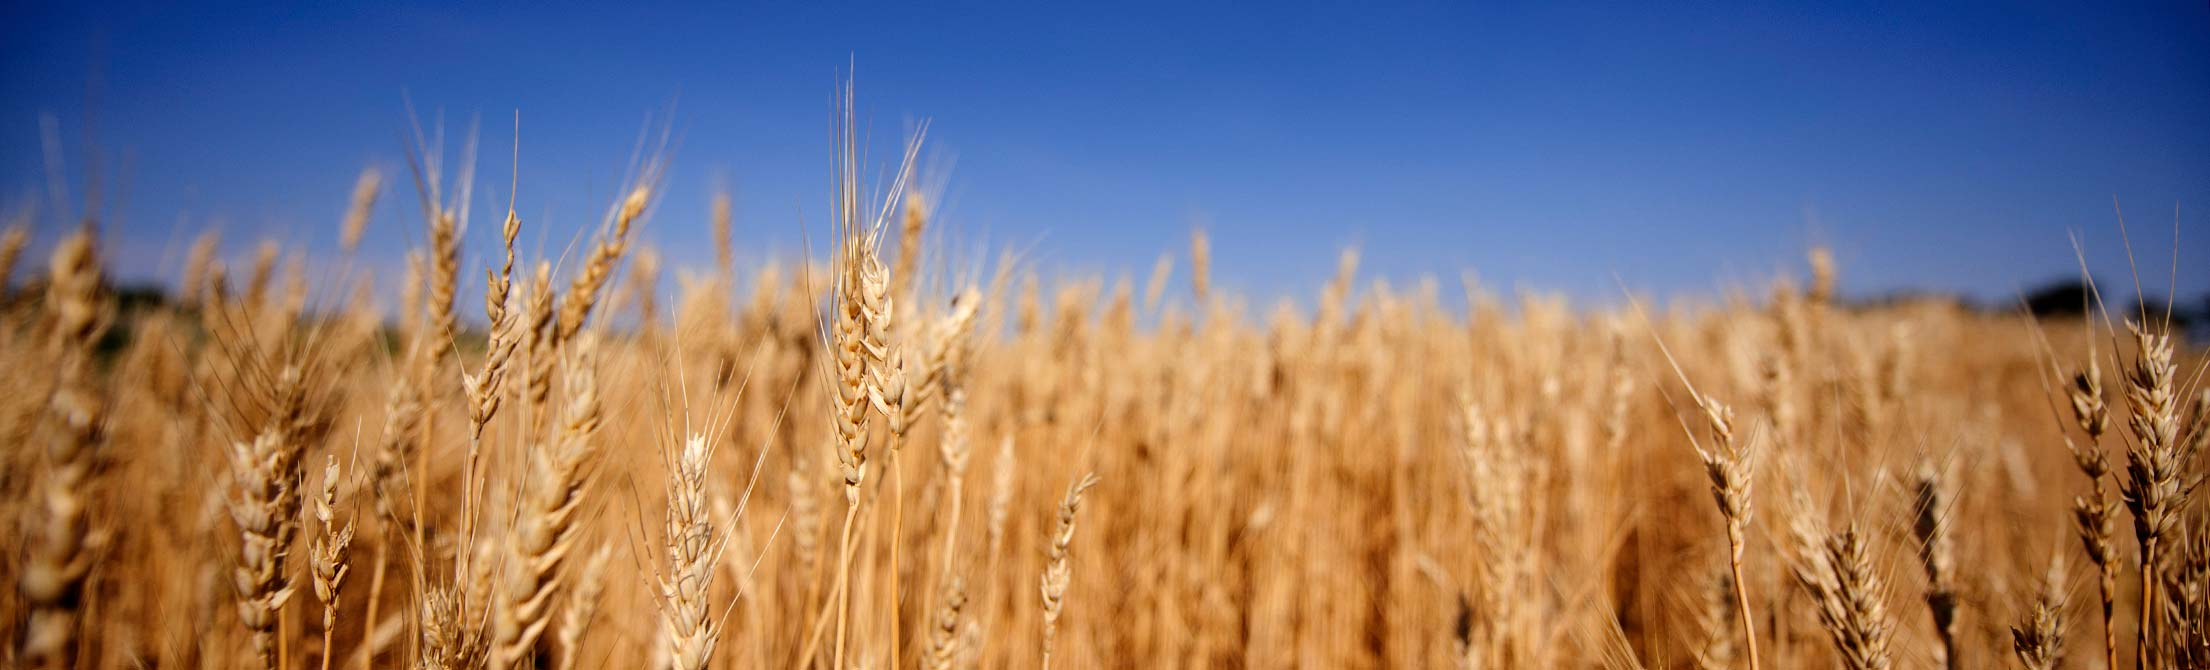 image of golden wheatfield and sunny blue skies